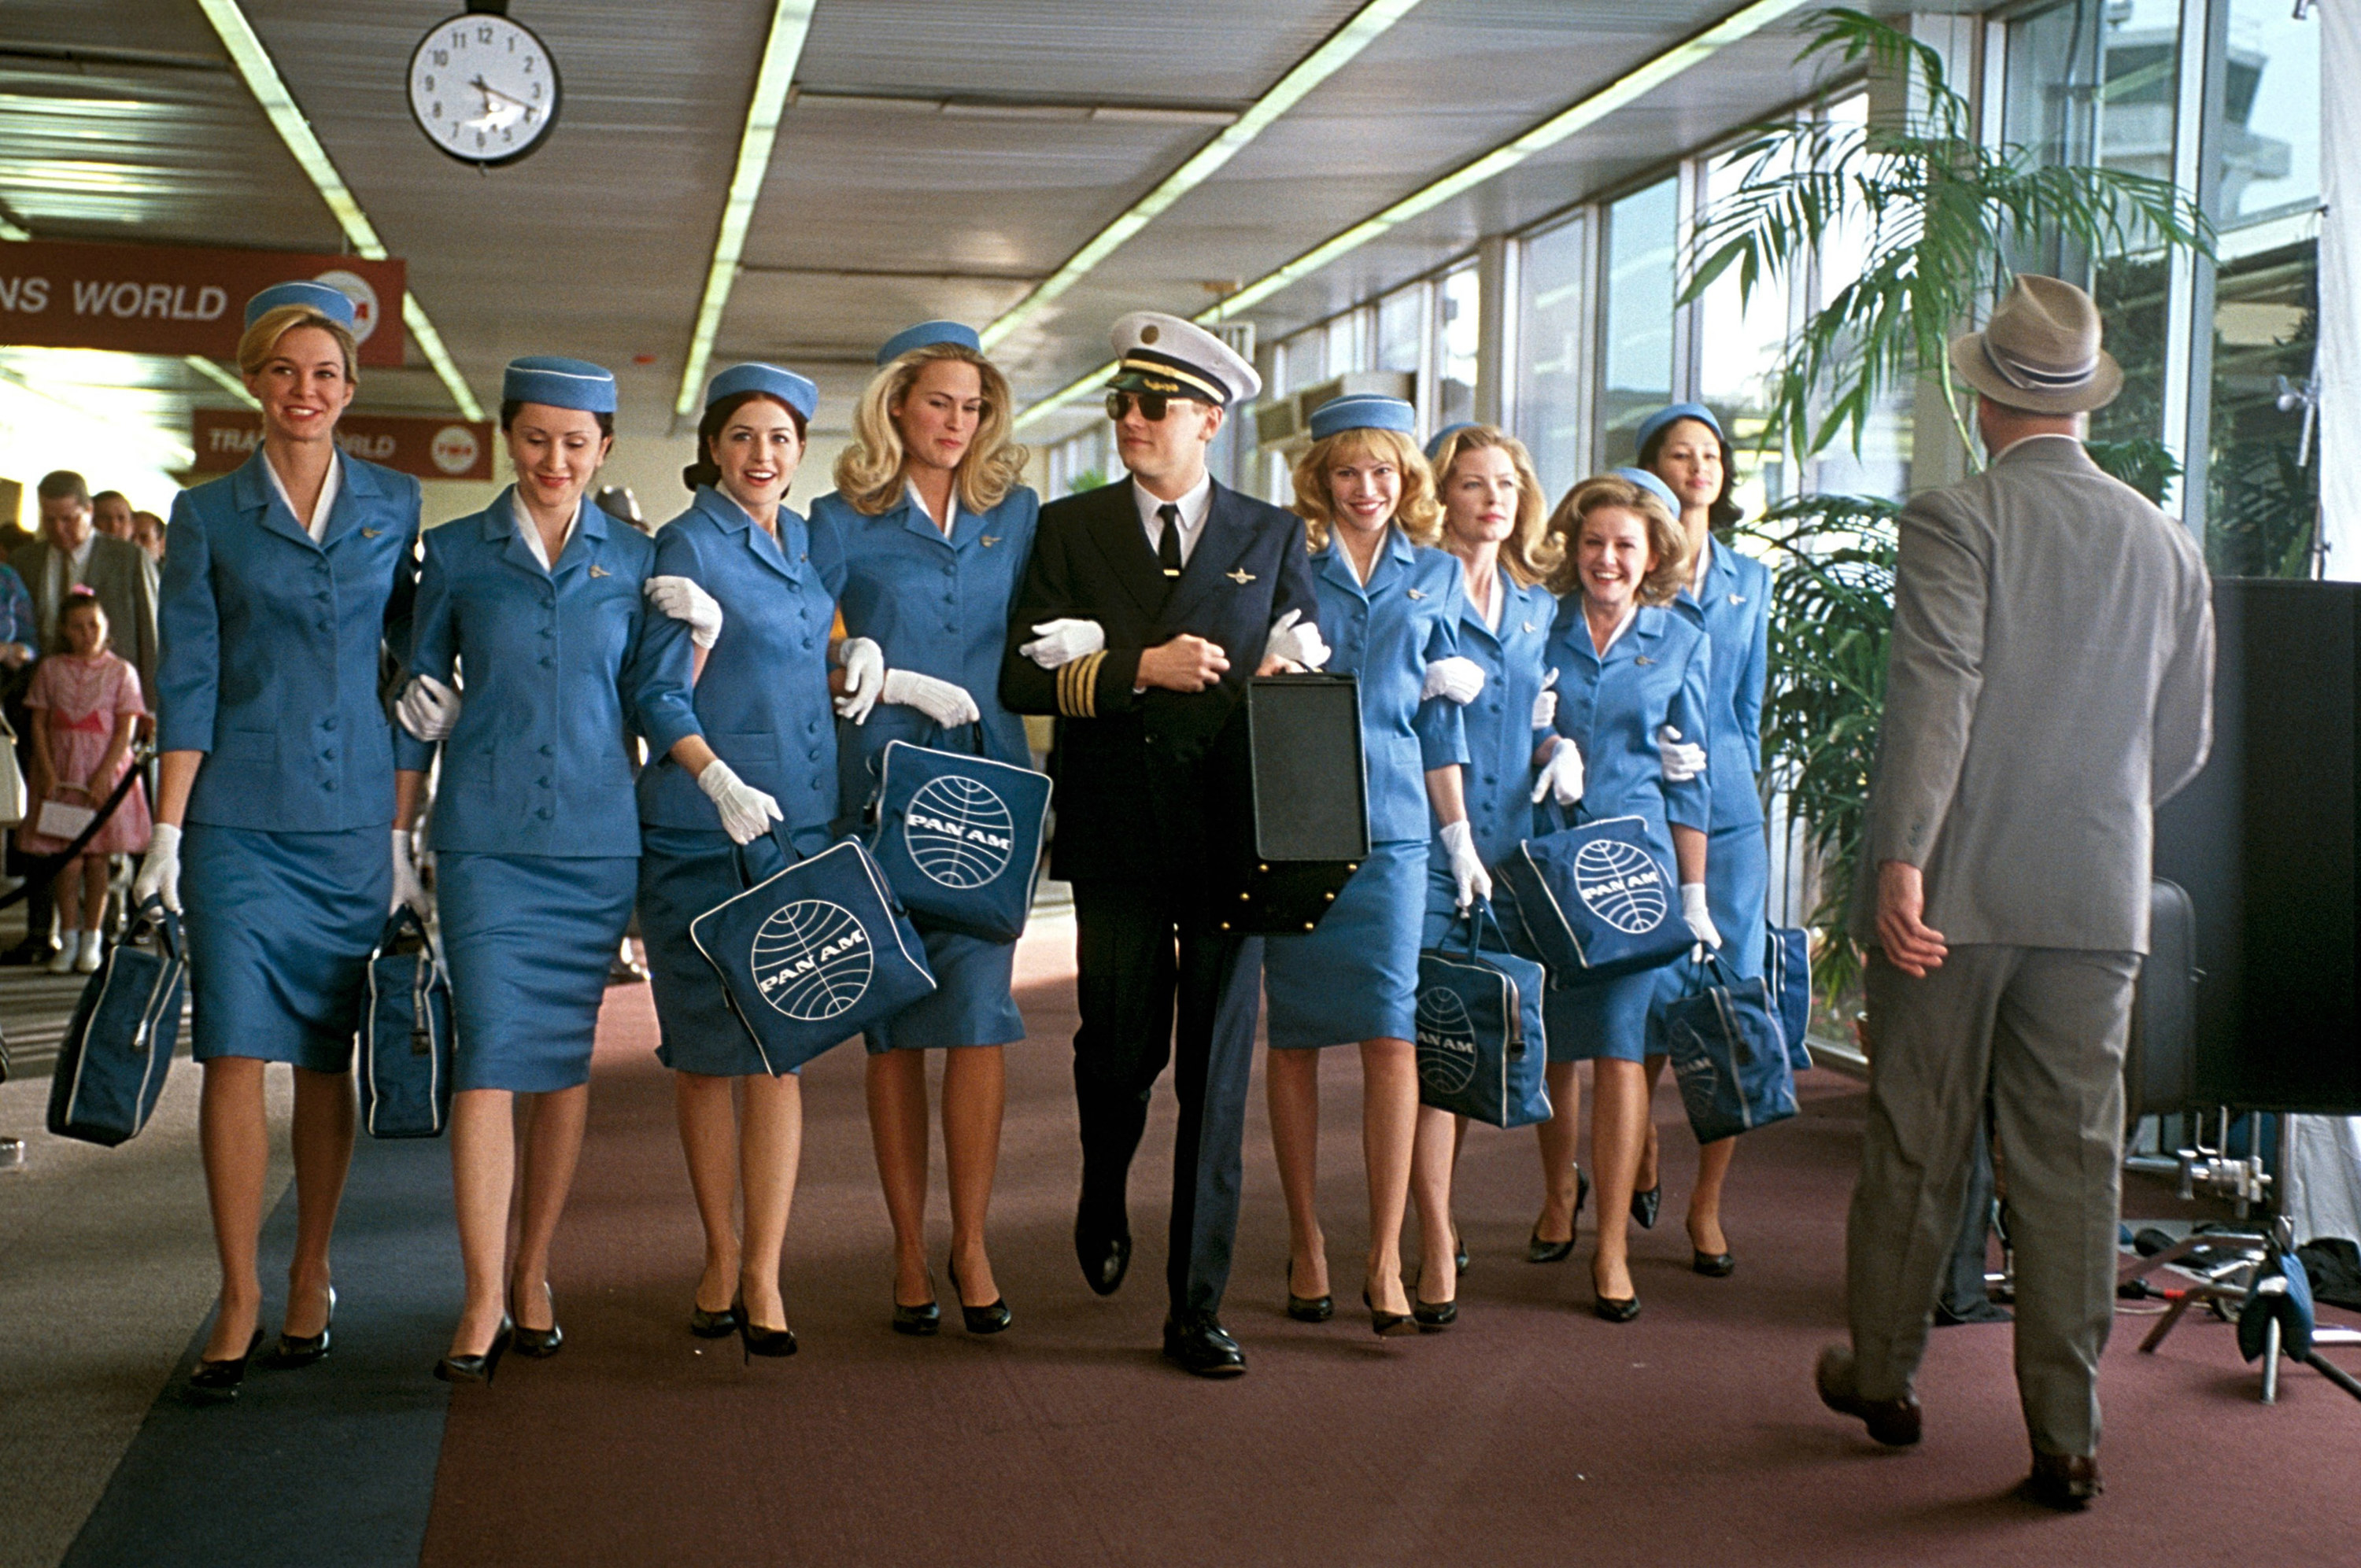 Leonardo Di Caprio in Catch Me If You Can walking through an airport with a bevy of female flight attendants around him